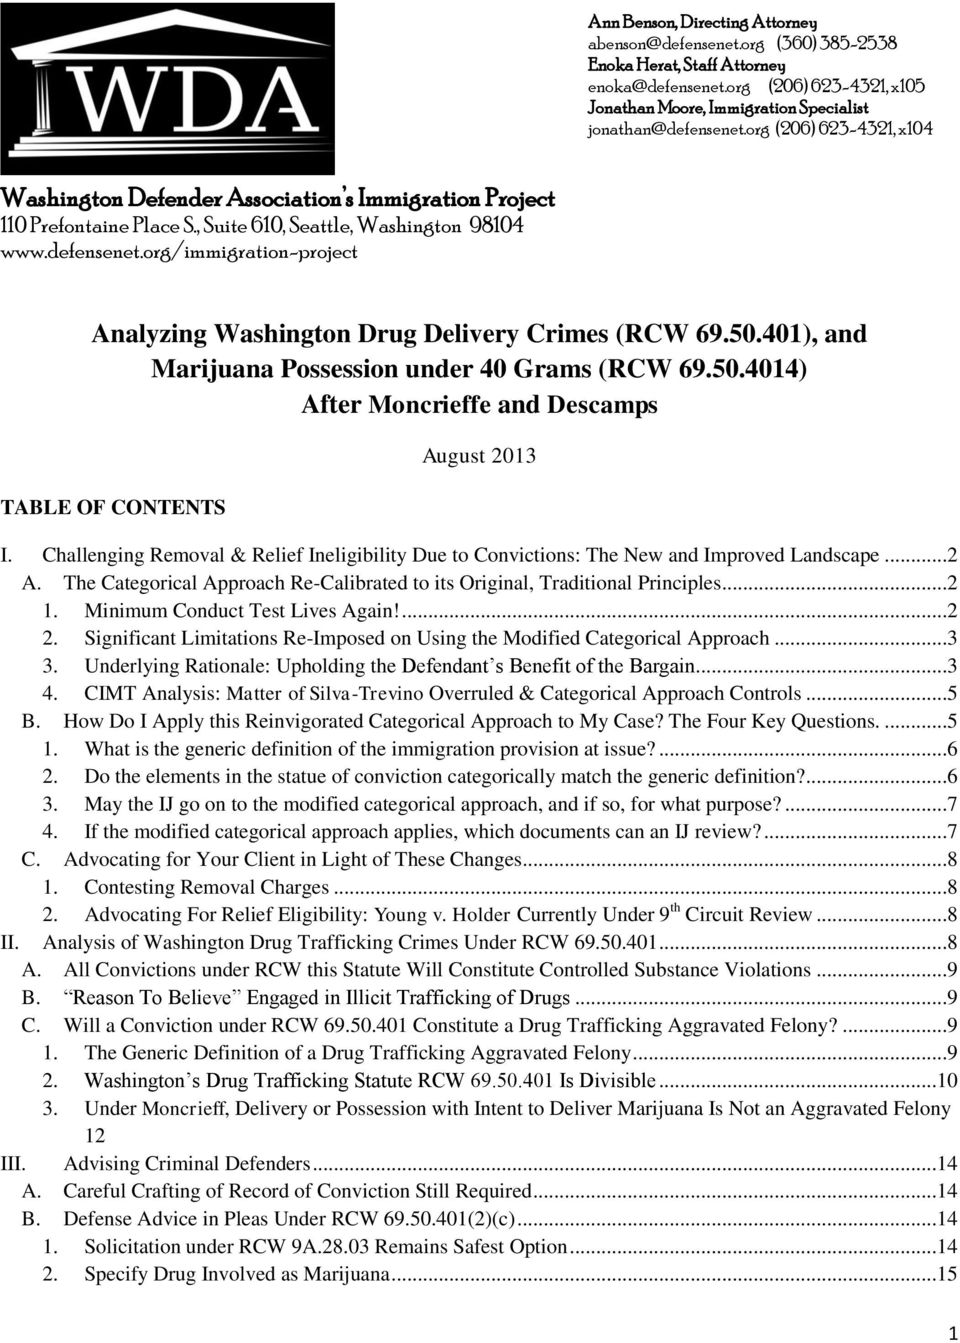 org/immigration-project Analyzing Washington Drug Delivery Crimes (RCW 69.50.401), and Marijuana Possession under 40 Grams (RCW 69.50.4014) After Moncrieffe and Descamps TABLE OF CONTENTS August 2013 I.